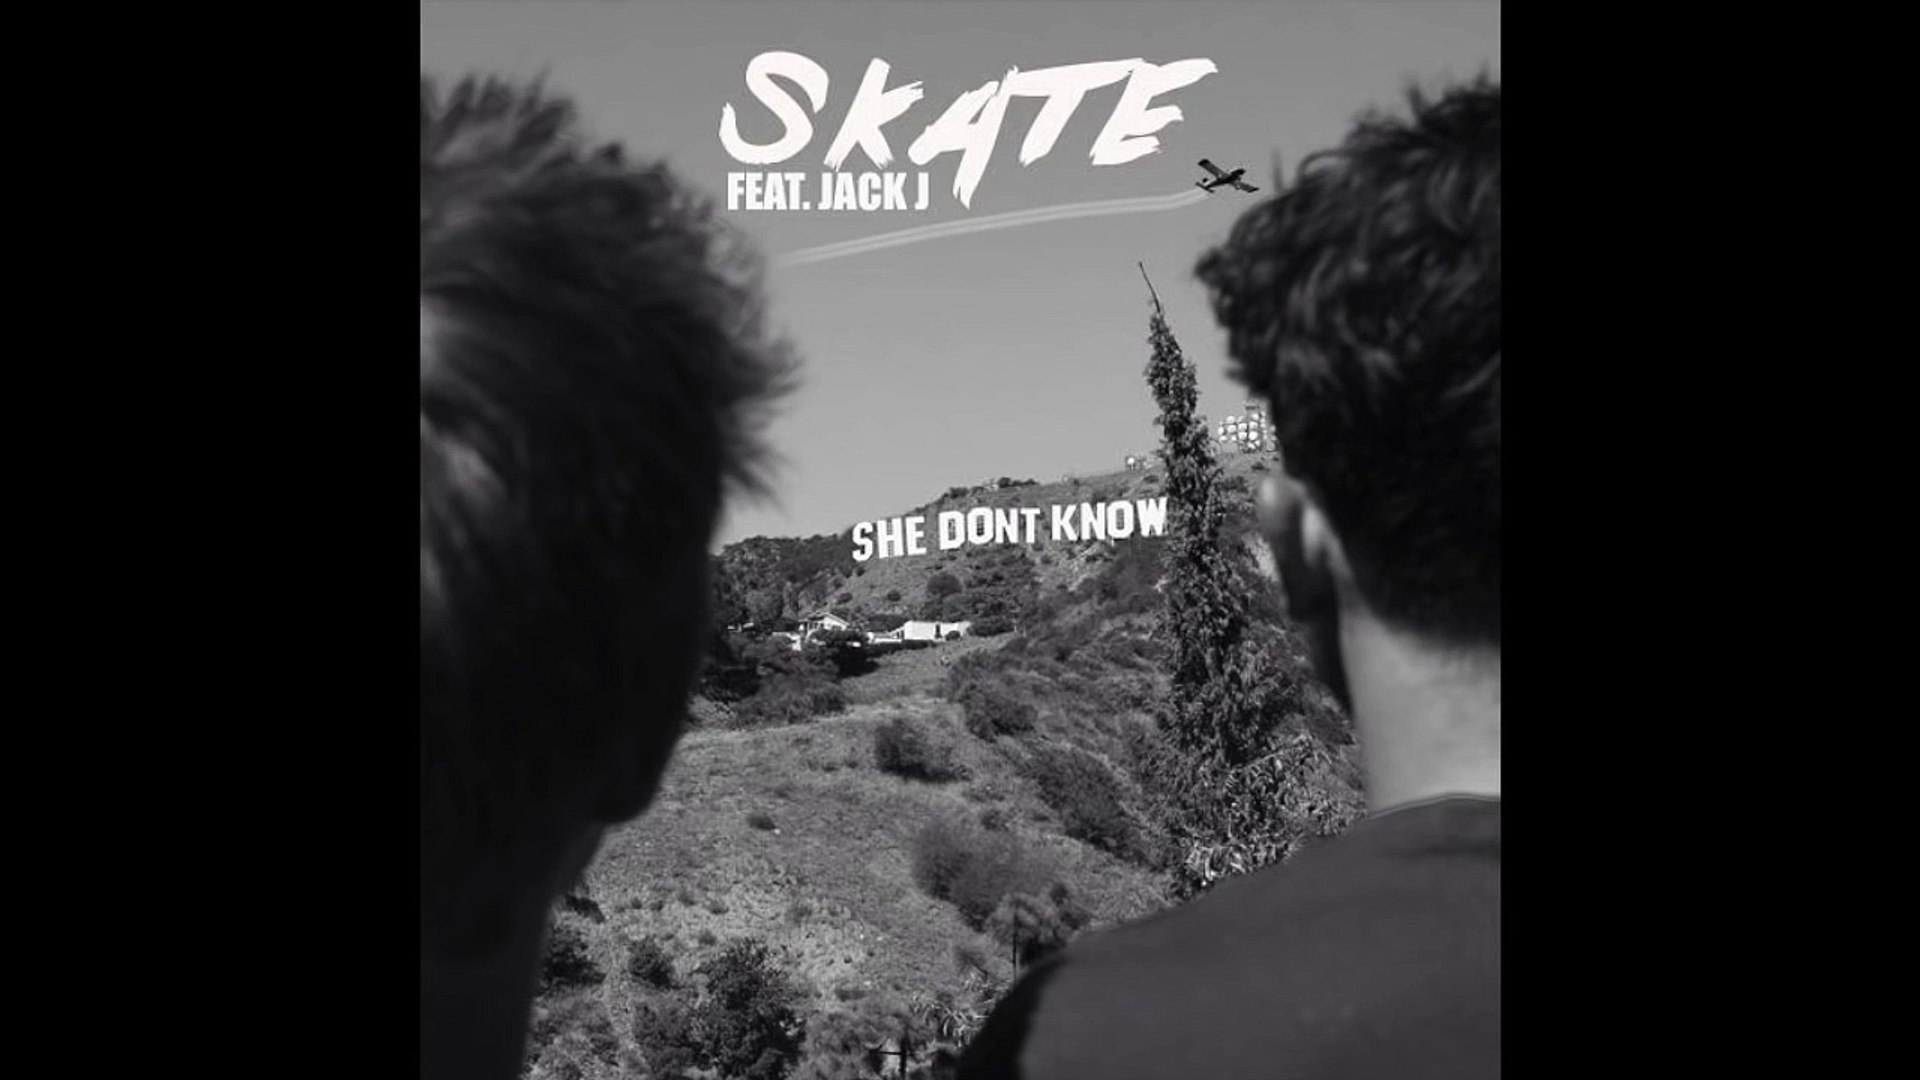 Skate & Jack Johnson (Jack and Jack) - She Don't Know | Audio